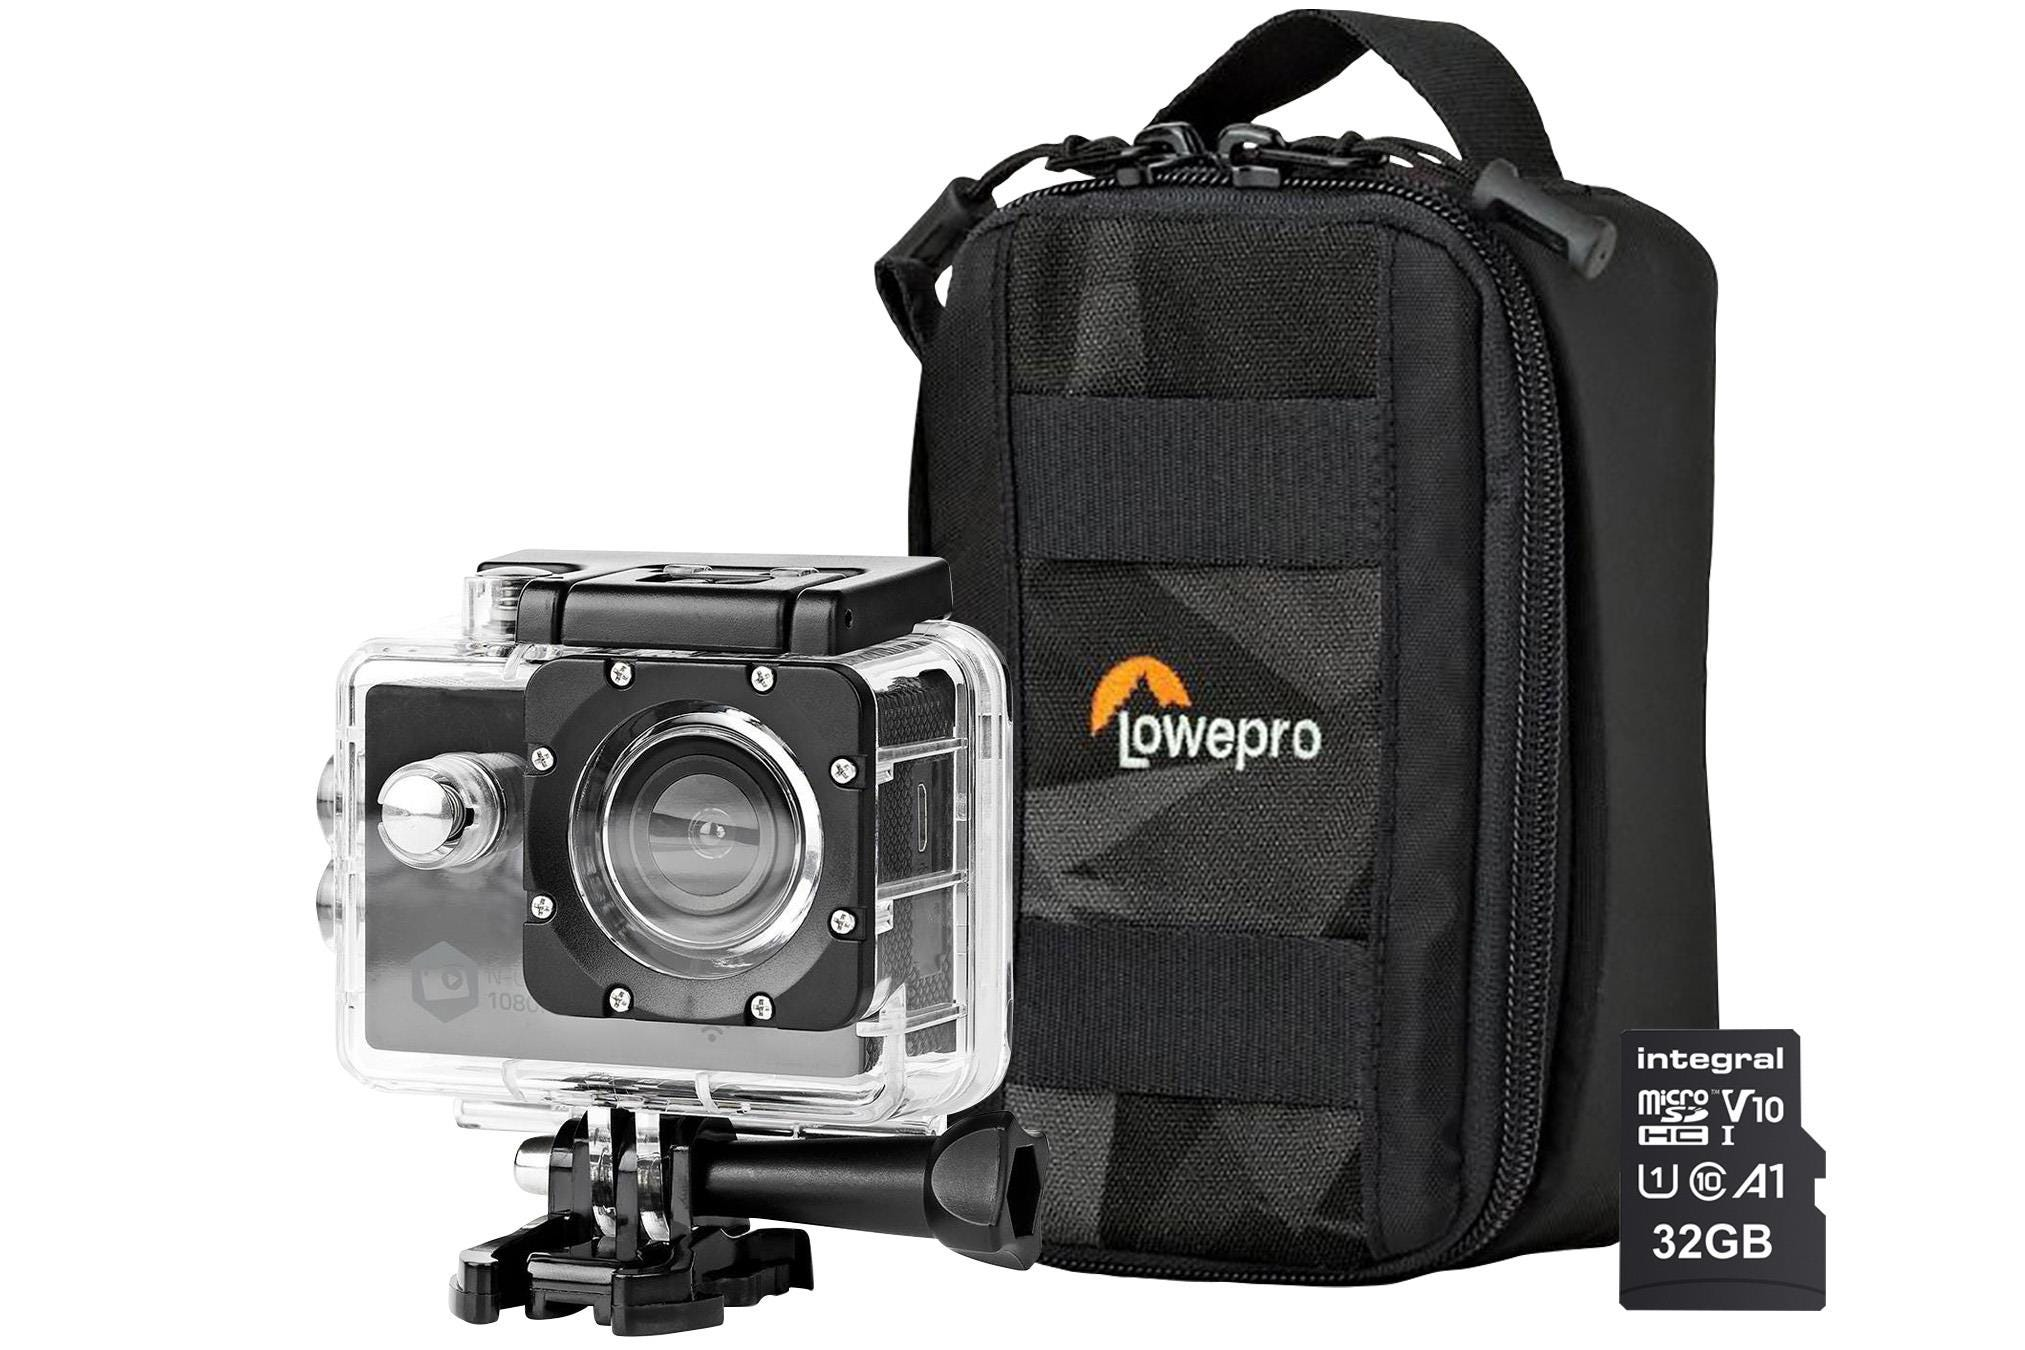 Nedis Full HD WiFi Action Cam inc Waterproof Case, Mounting Kits, LowePro Protective Bag    32GB Mic